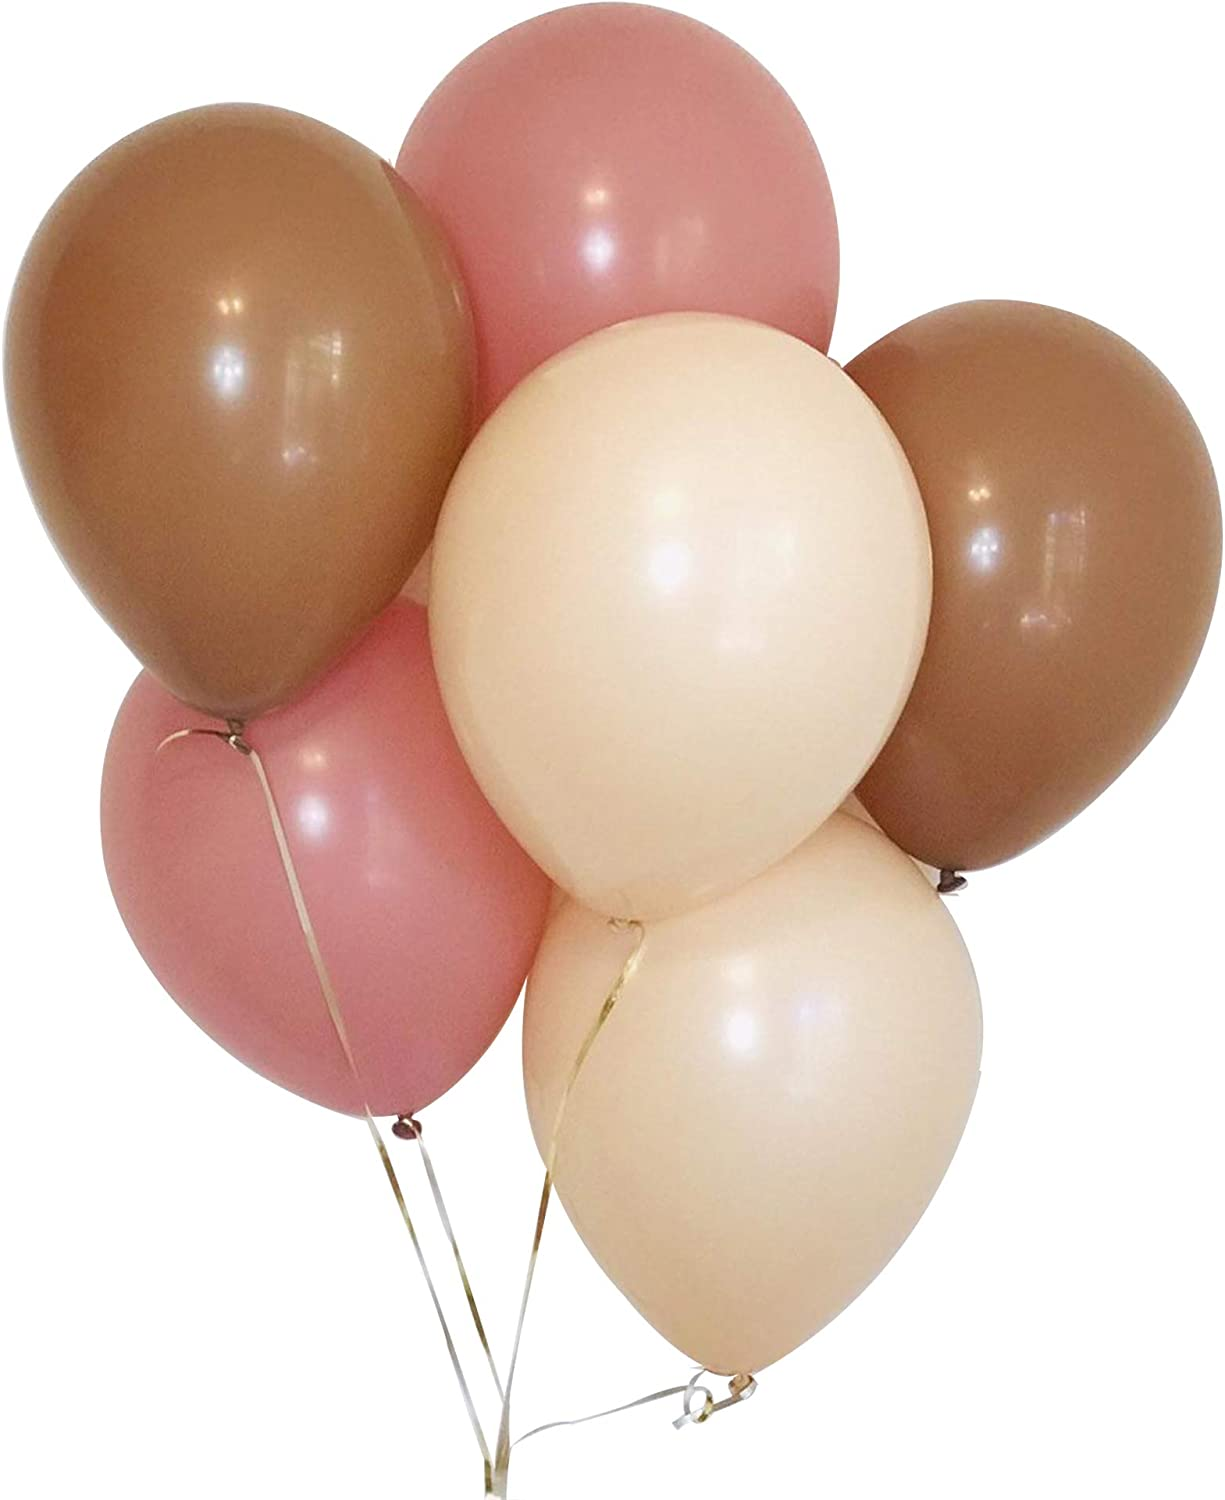 60PCS Blush Nude Cream Dusty Rose Mauve Pink Tan Brown 10 Inch Latex Balloon Backrop Arch Garland for Boho Nuetral Baby Shower Rustic Fall Bridal Shower Wedding Birthday Party Decoration